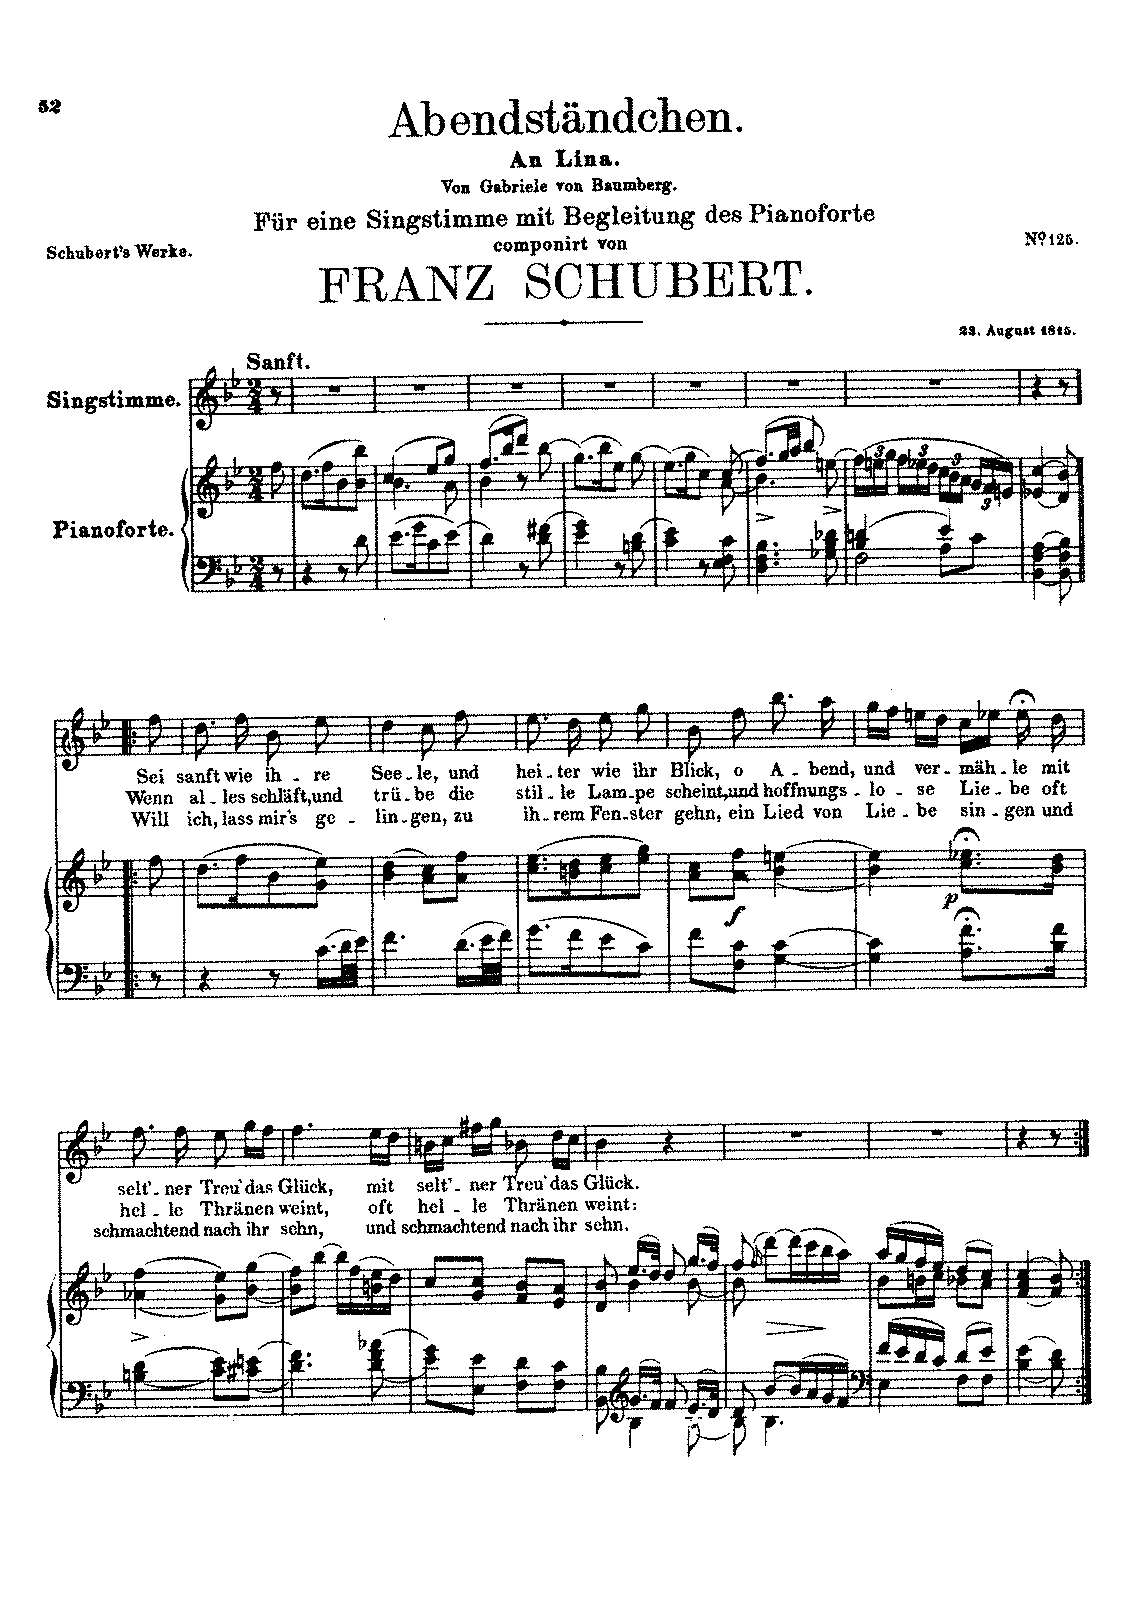 Abendstndchen d265 schubert franz imslppetrucci music general information hexwebz Image collections